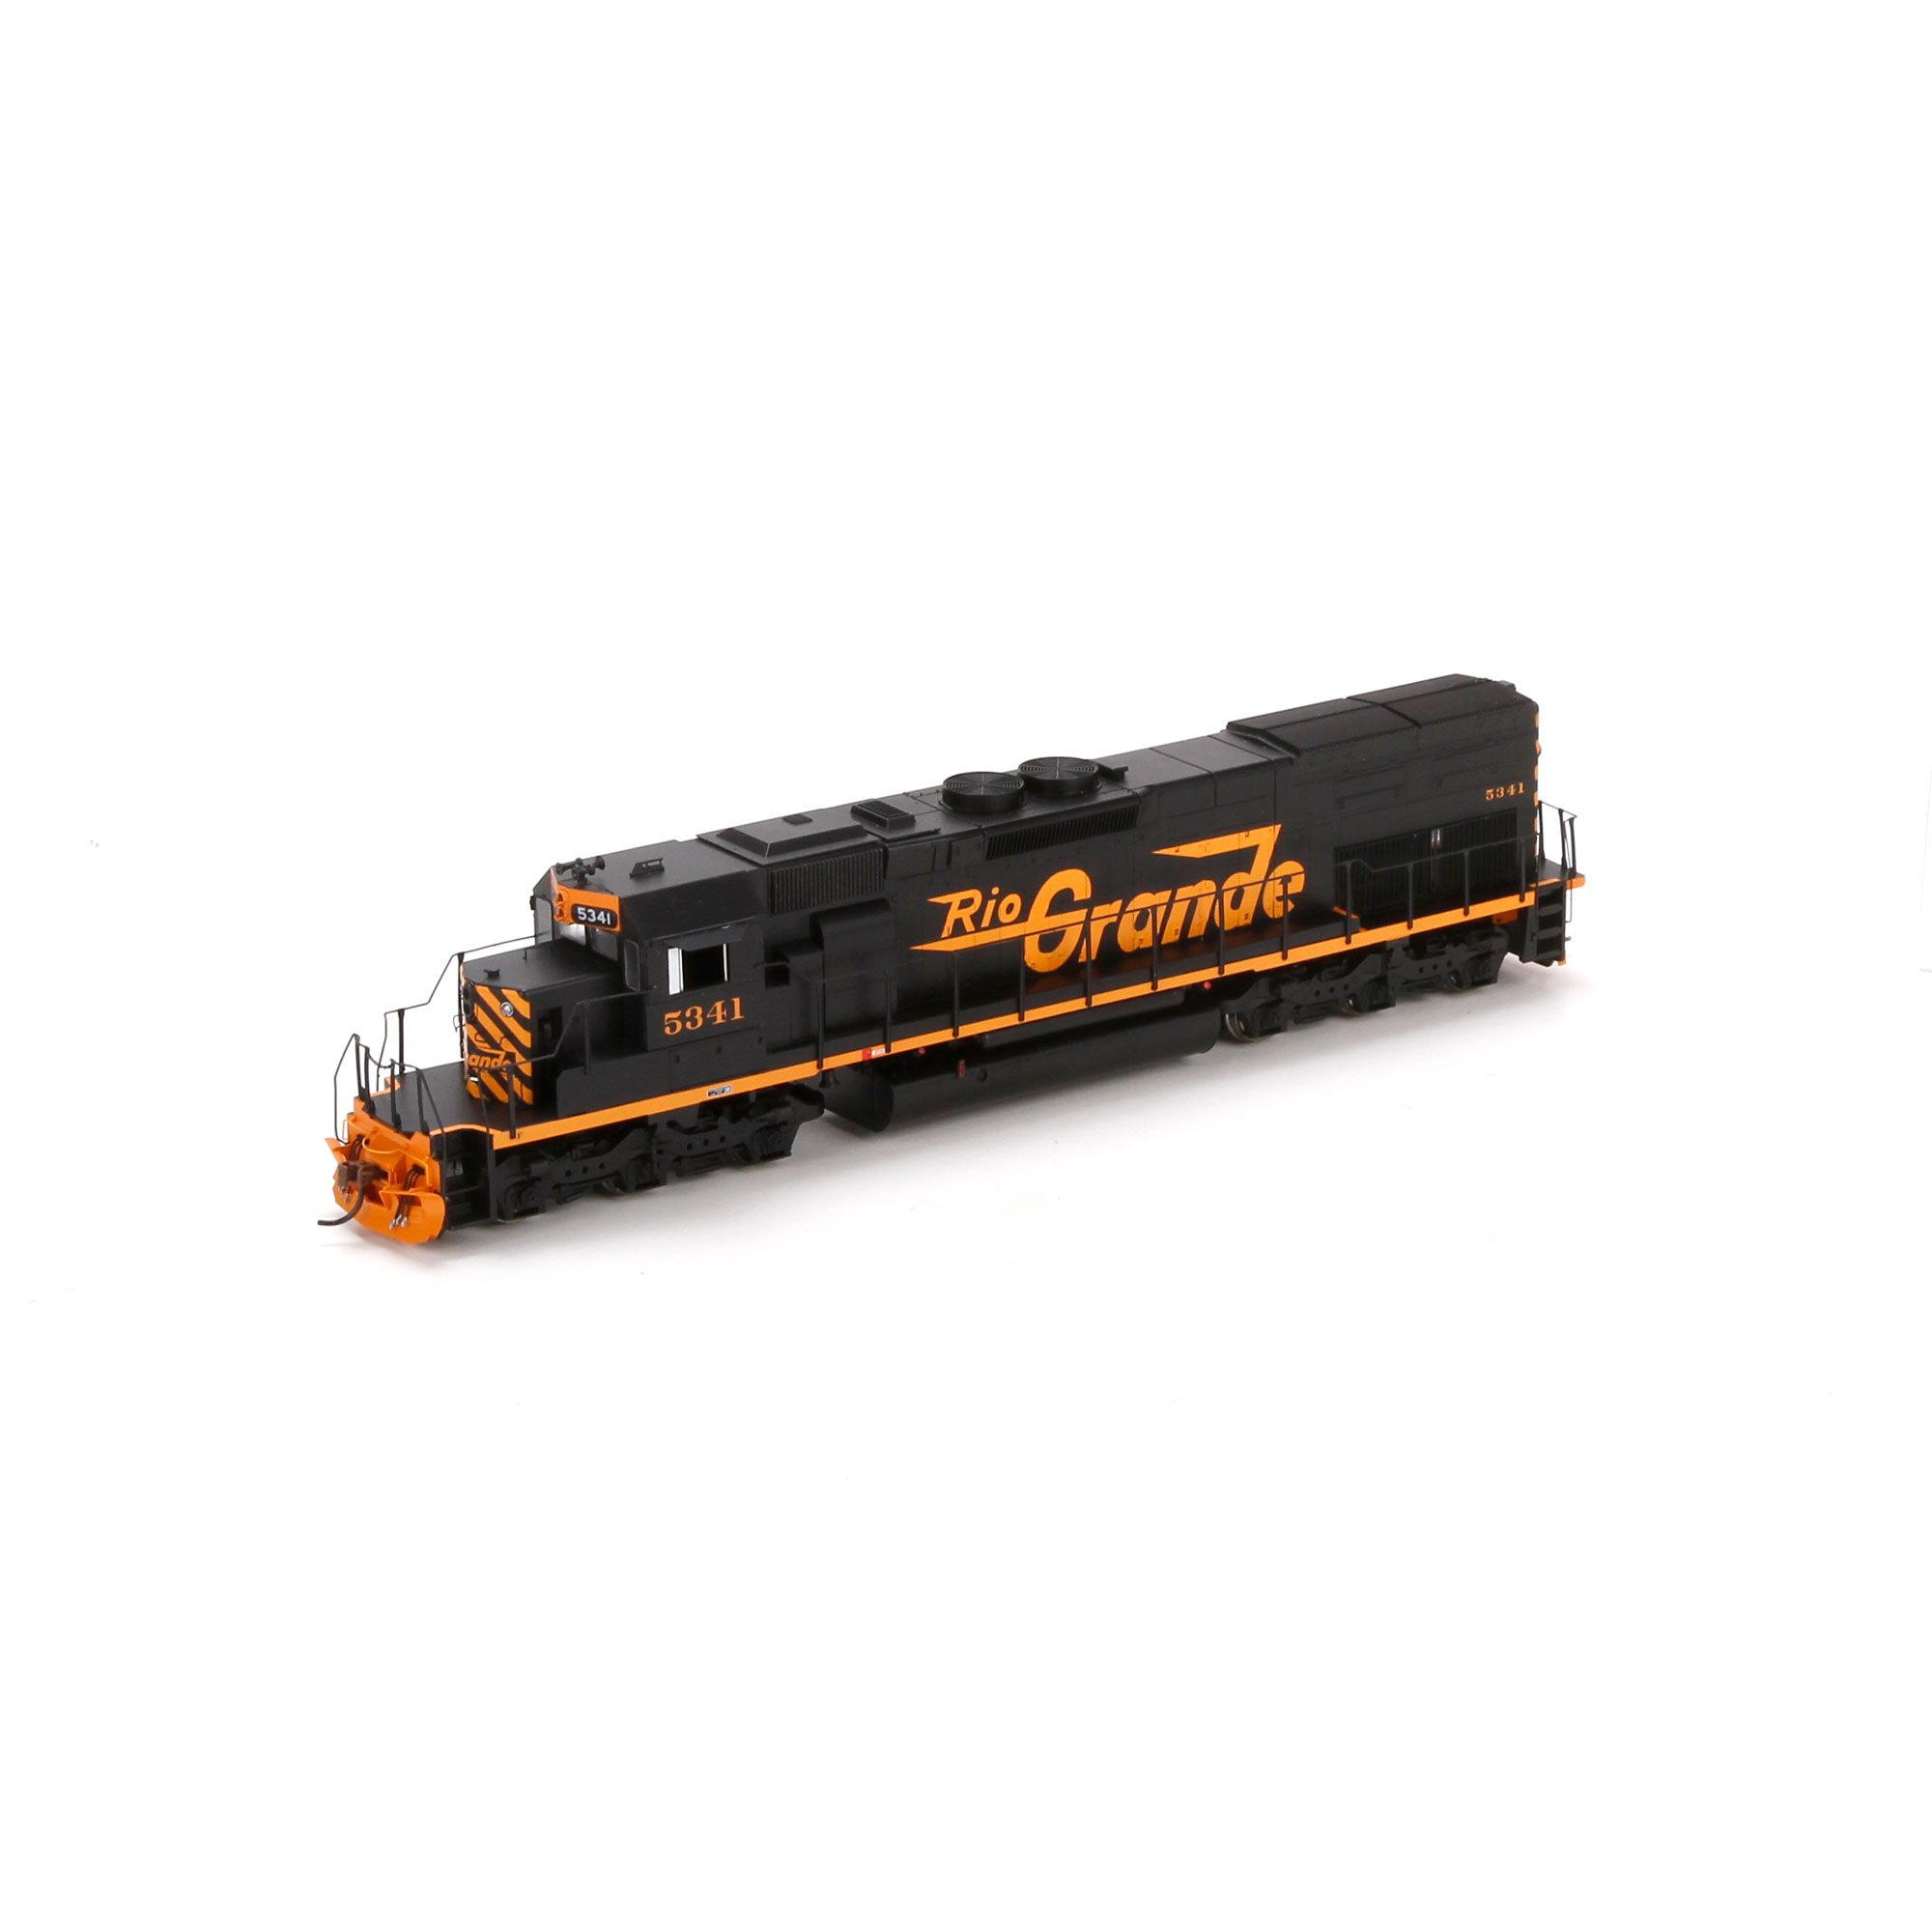 Ho Rtr Sd40t 2 D Rgw 5341 Ath98323 Athearn Trains